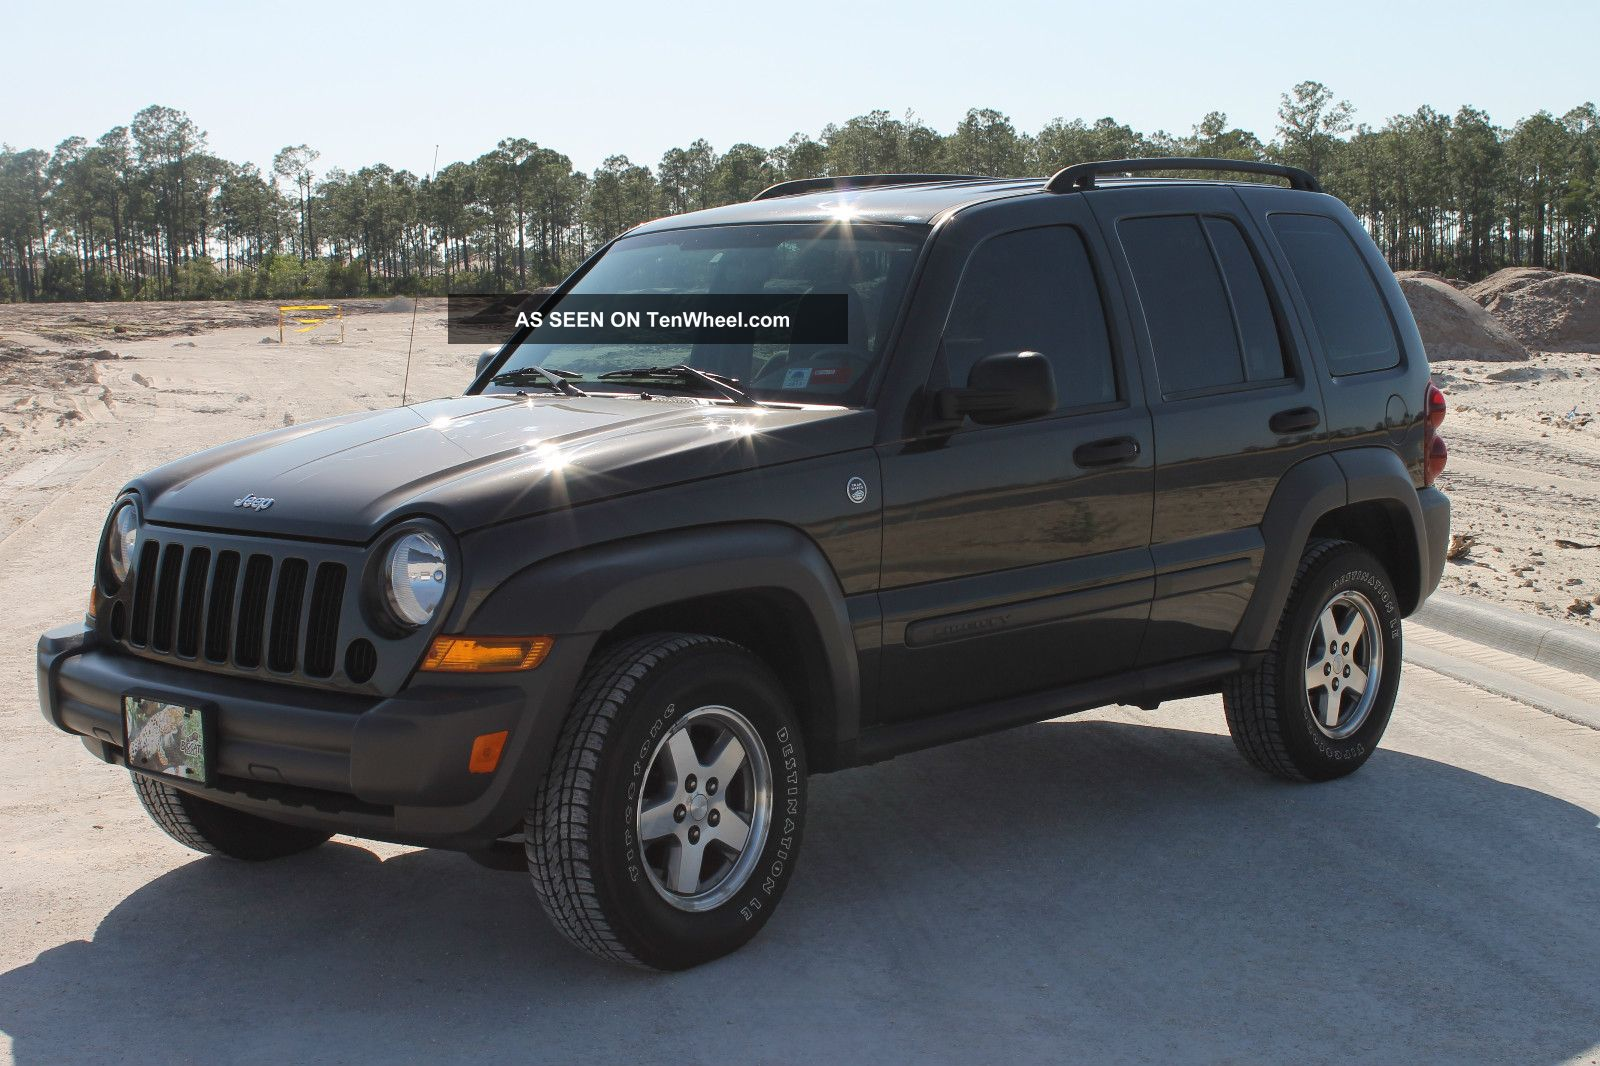 immaculate 4wd 2006 jeep liberty. Black Bedroom Furniture Sets. Home Design Ideas